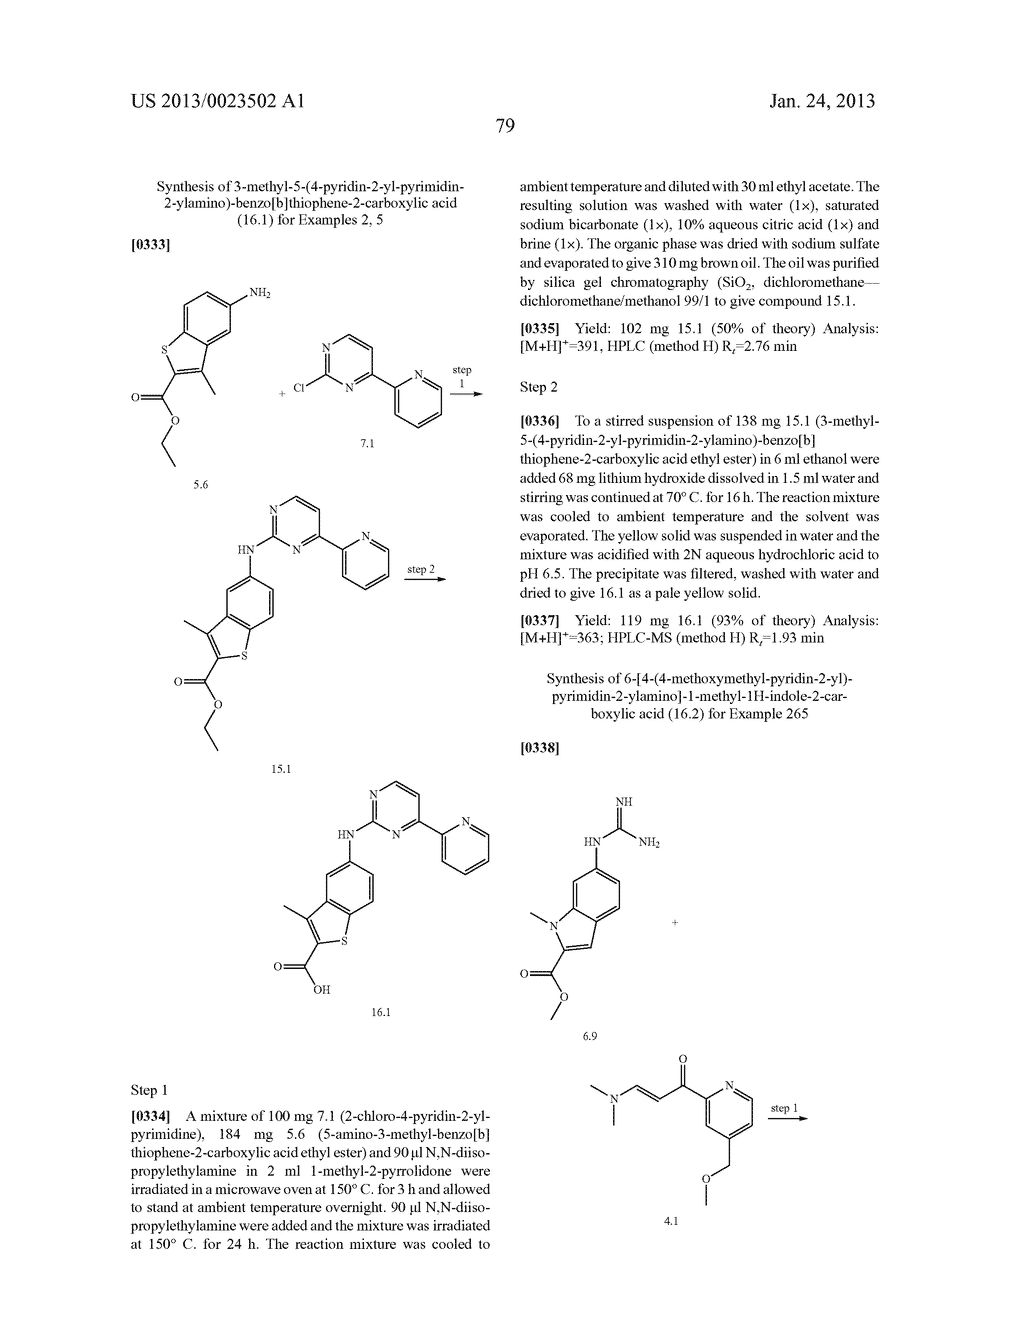 SUBSTITUTED PYRIDINYL-PYRIMIDINES AND THEIR USE AS MEDICAMENTS - diagram, schematic, and image 80